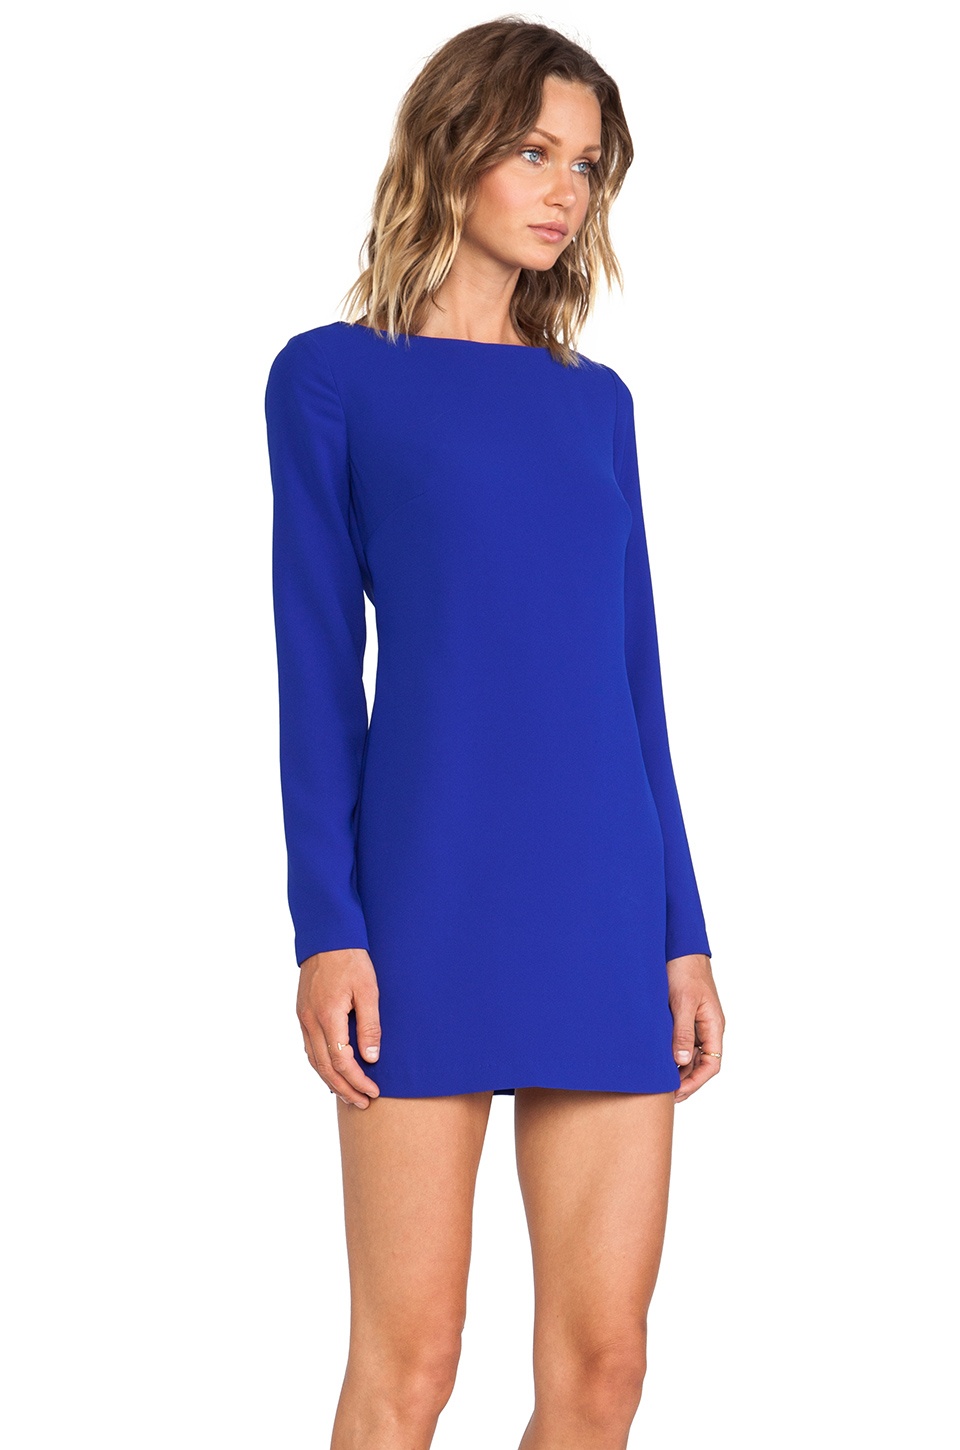 Shona joy Magnetic Long Sleeve Shift Dress in Blue | Lyst